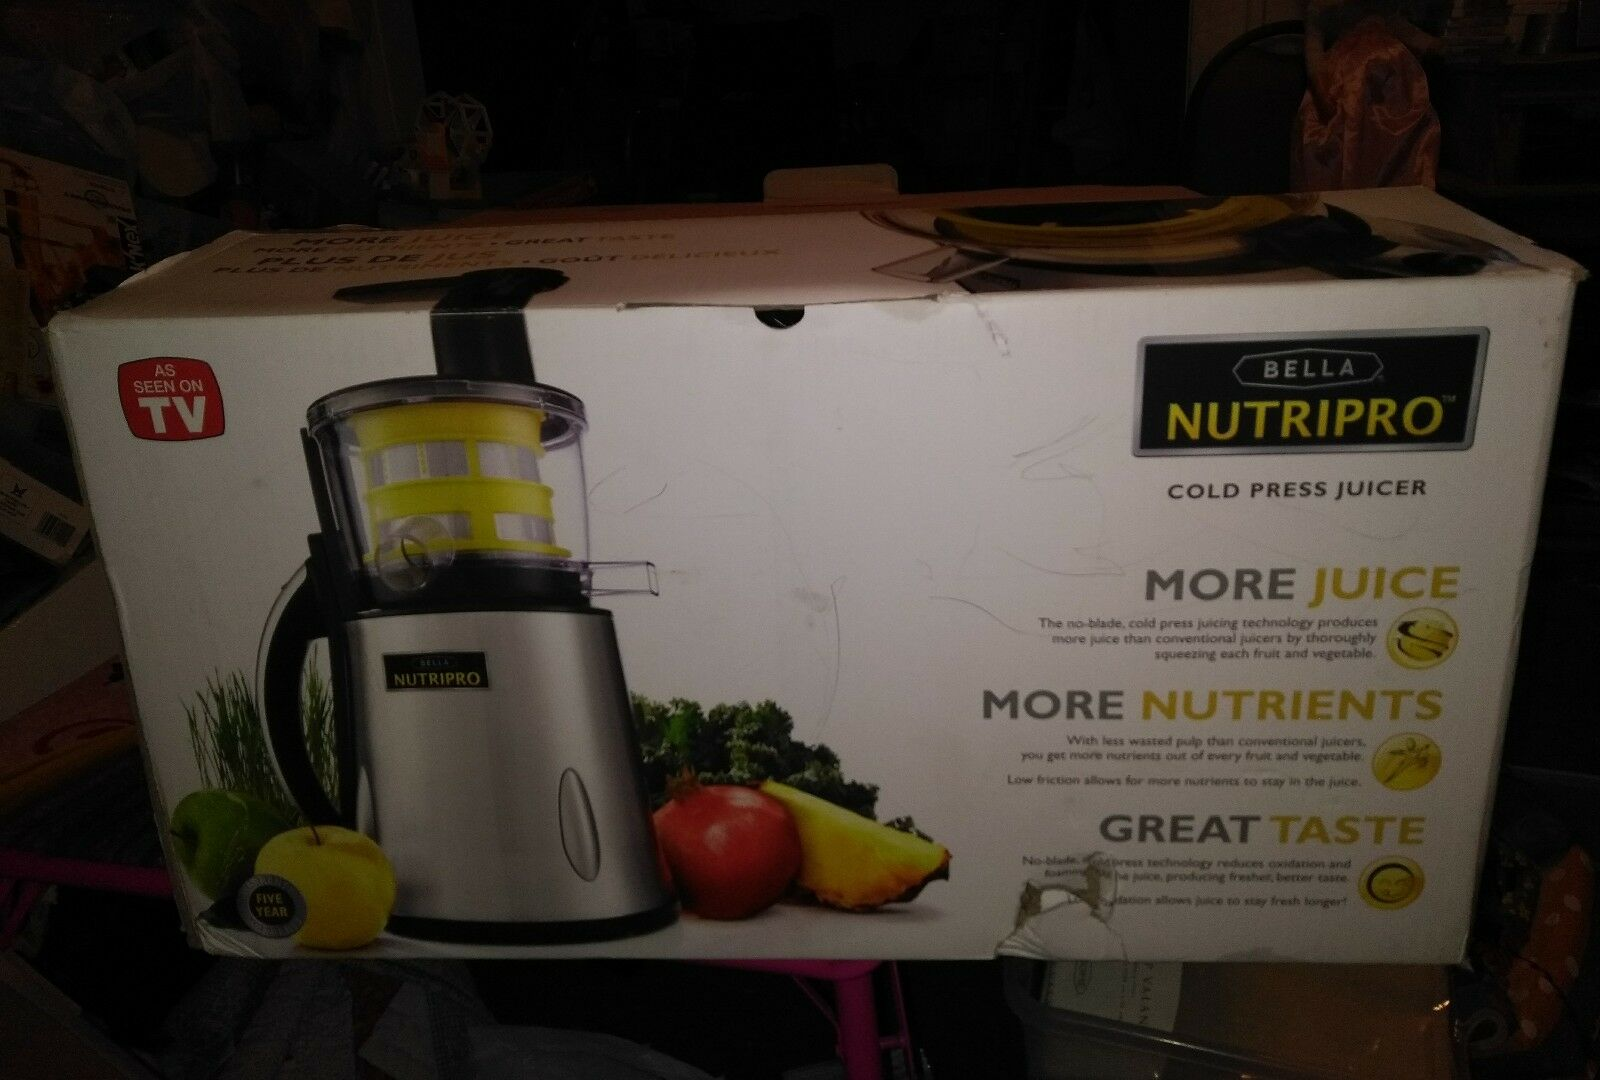 BELLA NUTRIPRO Cold Press Juicer